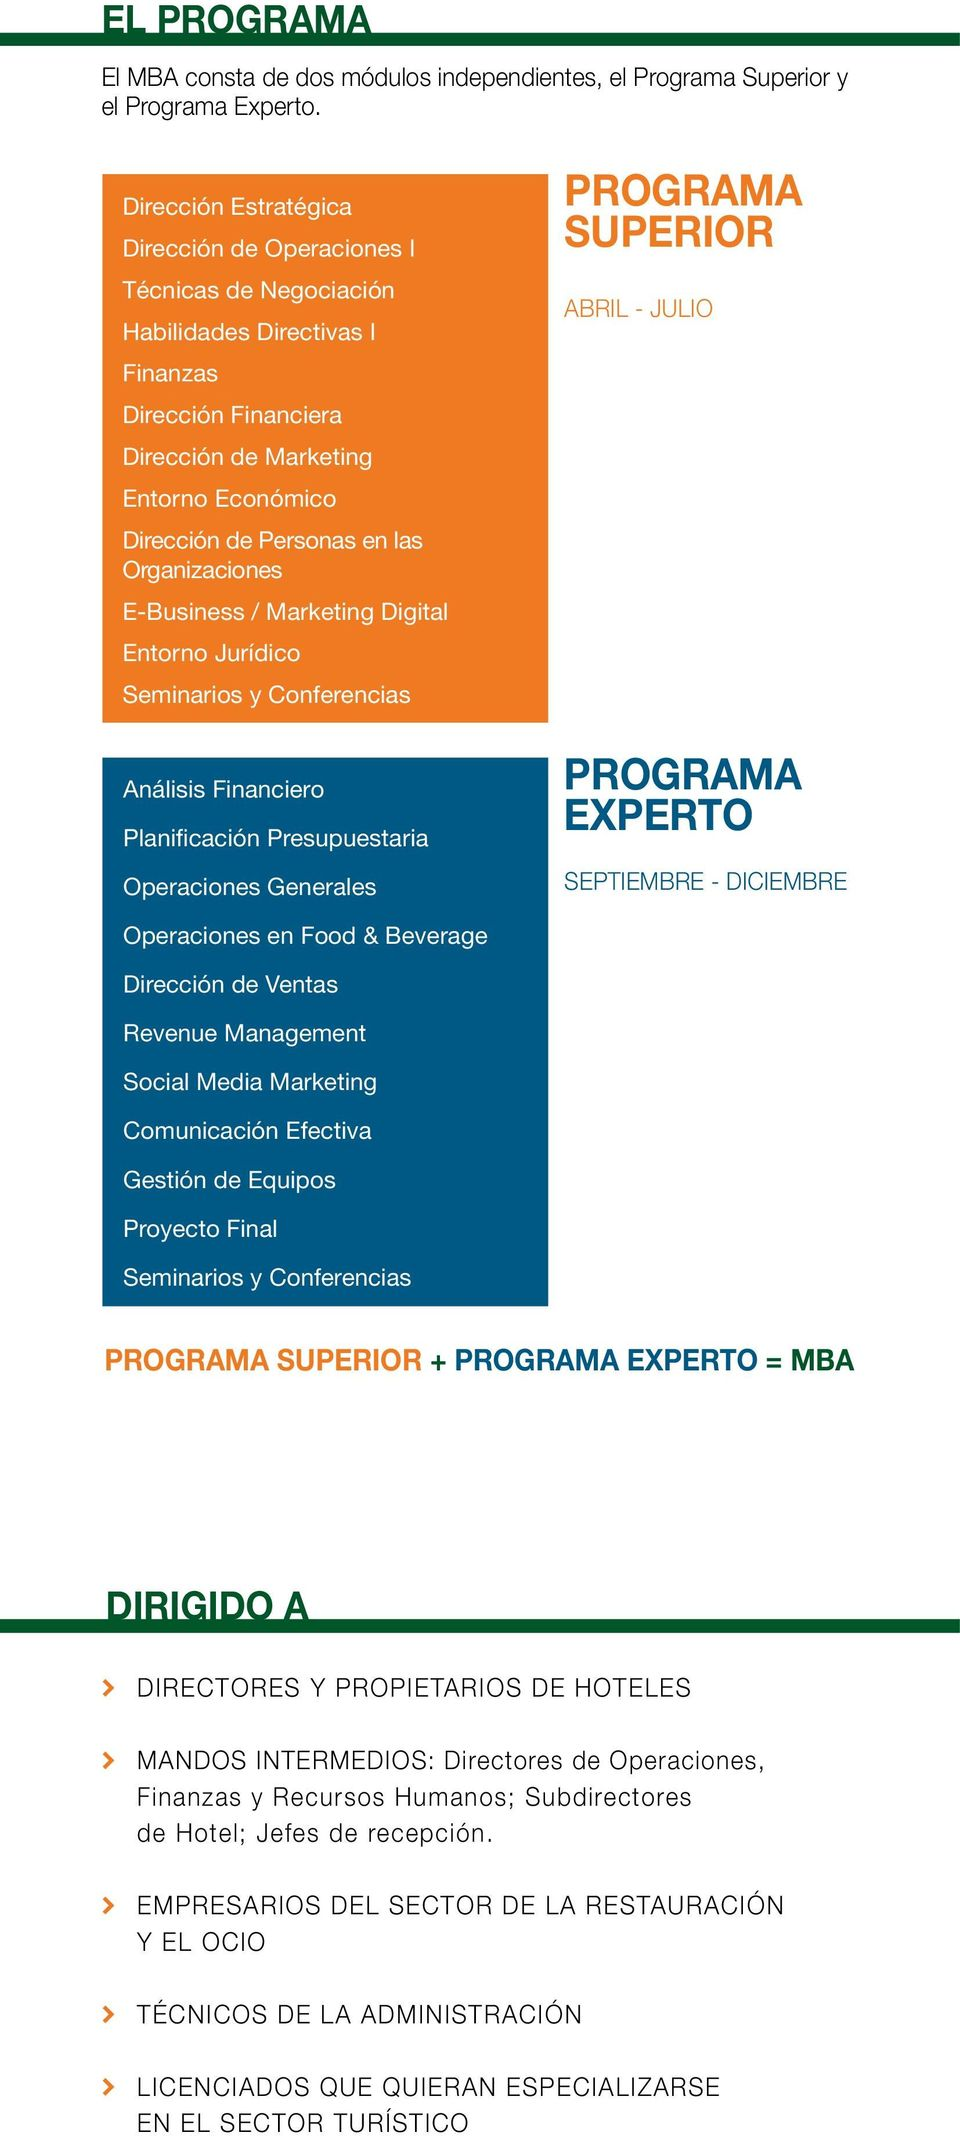 Organizaciones E-Business / Marketing Digital Entorno Jurídico Seminarios y Conferencias Análisis Financiero Planificación Presupuestaria Operaciones Generales PROGRAMA SUPERIOR ABRIL - JULIO